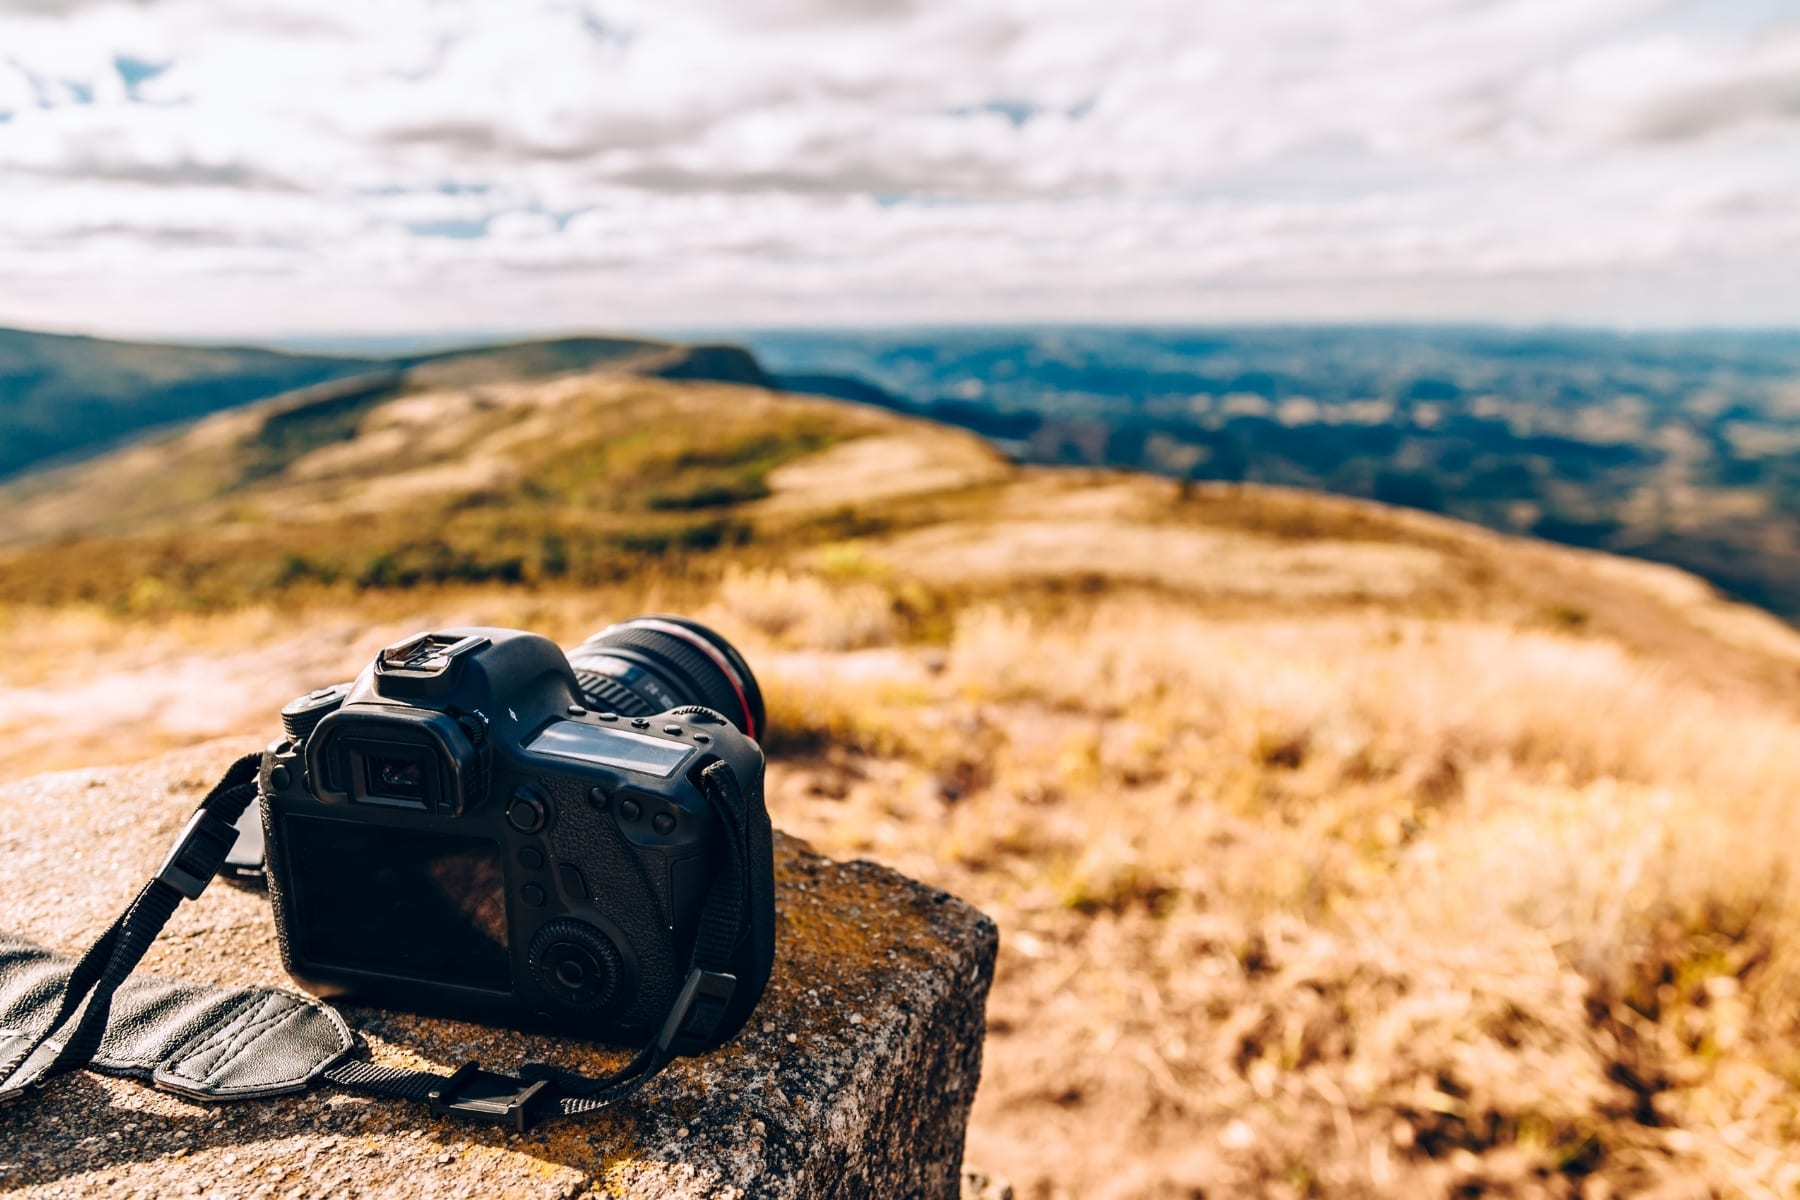 A DSLR camera on a rock outside.